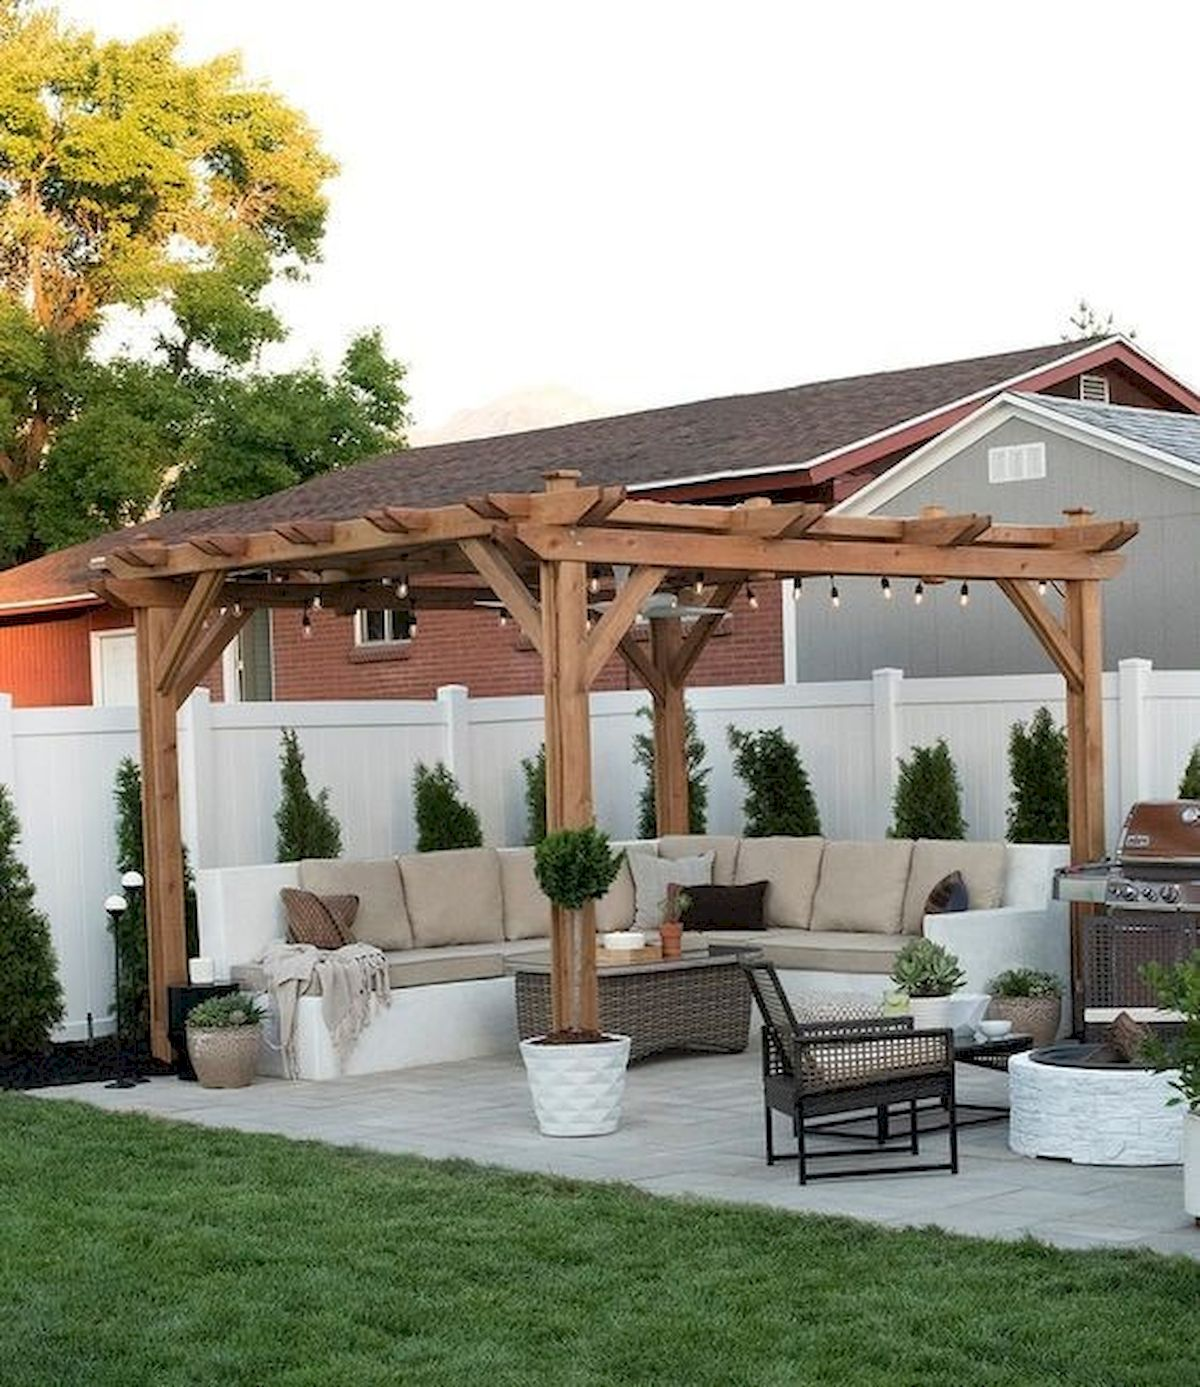 55 Wonderful Pergola Patio Design Ideas 46